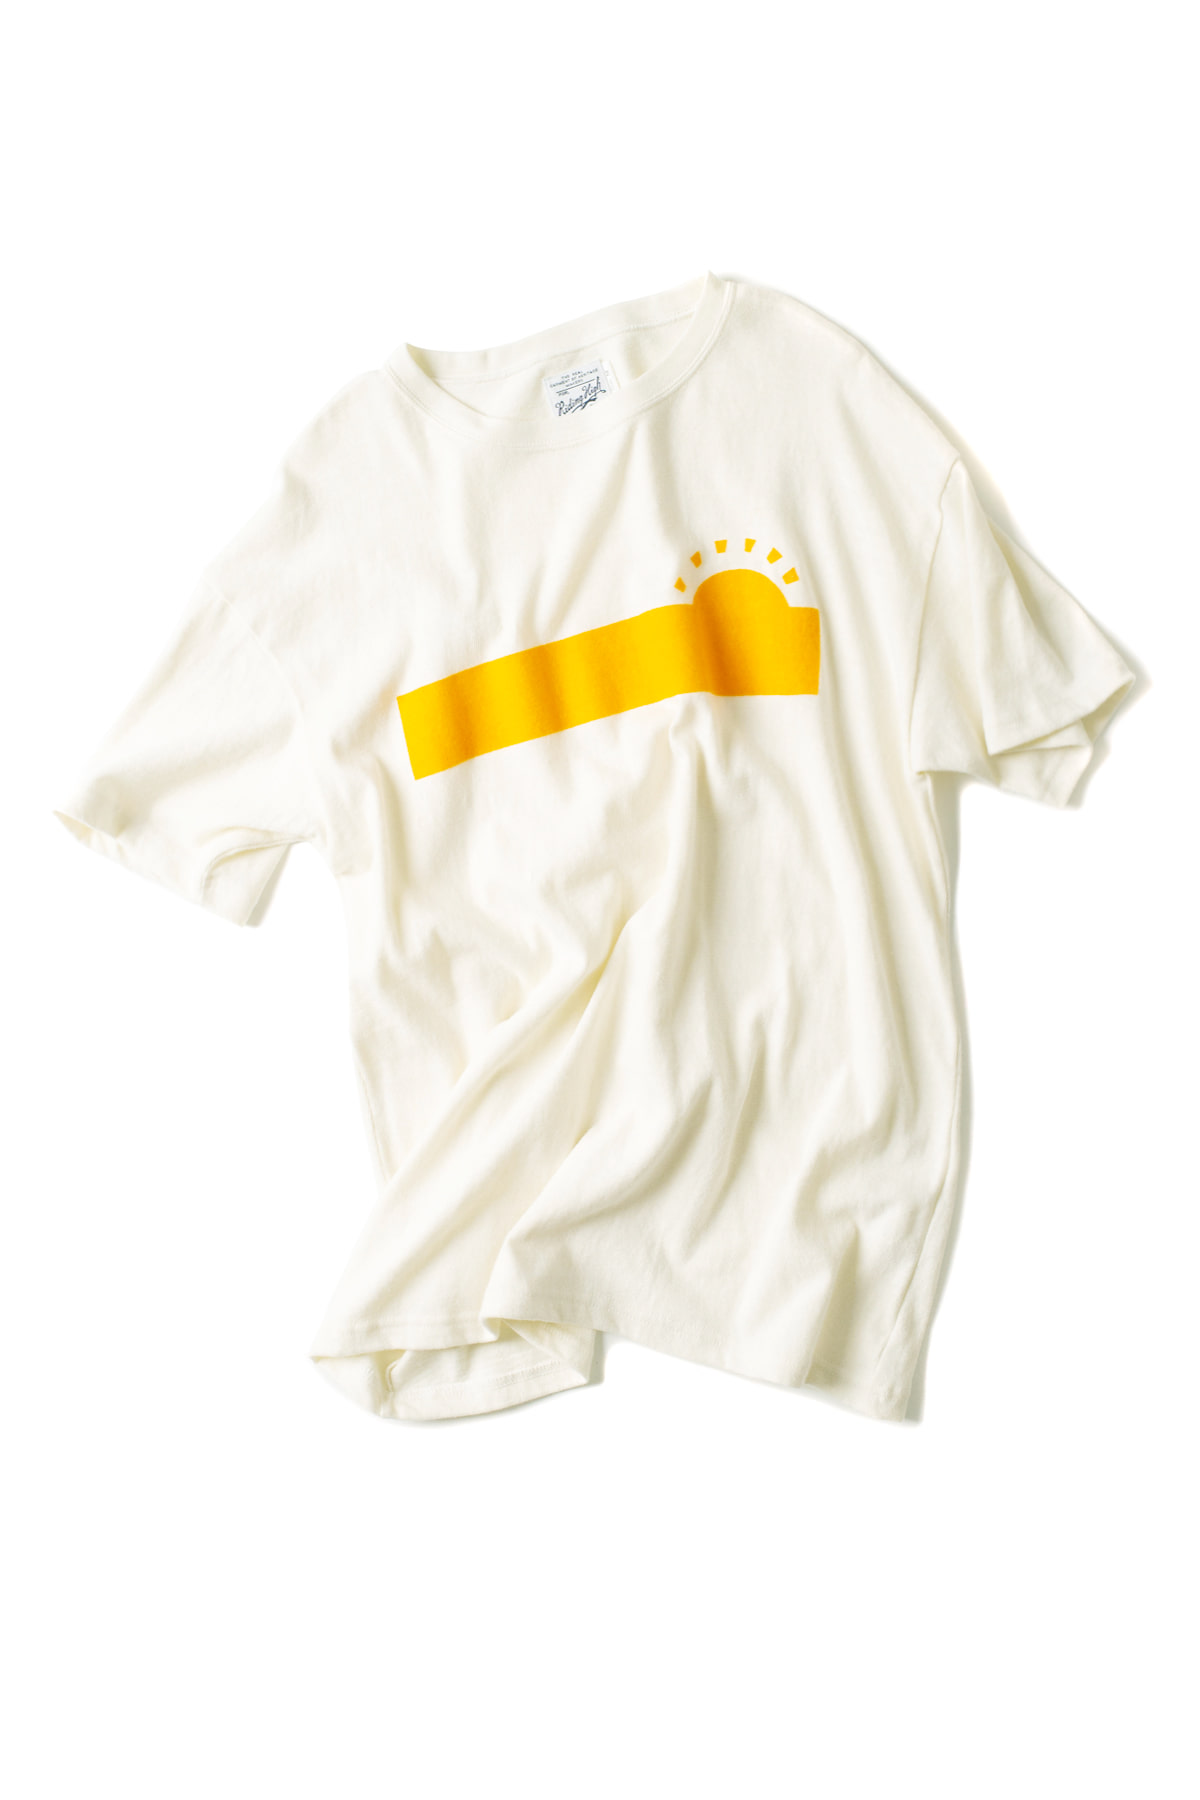 Riding High : Ruff Knit Flocky Tee (Sun)